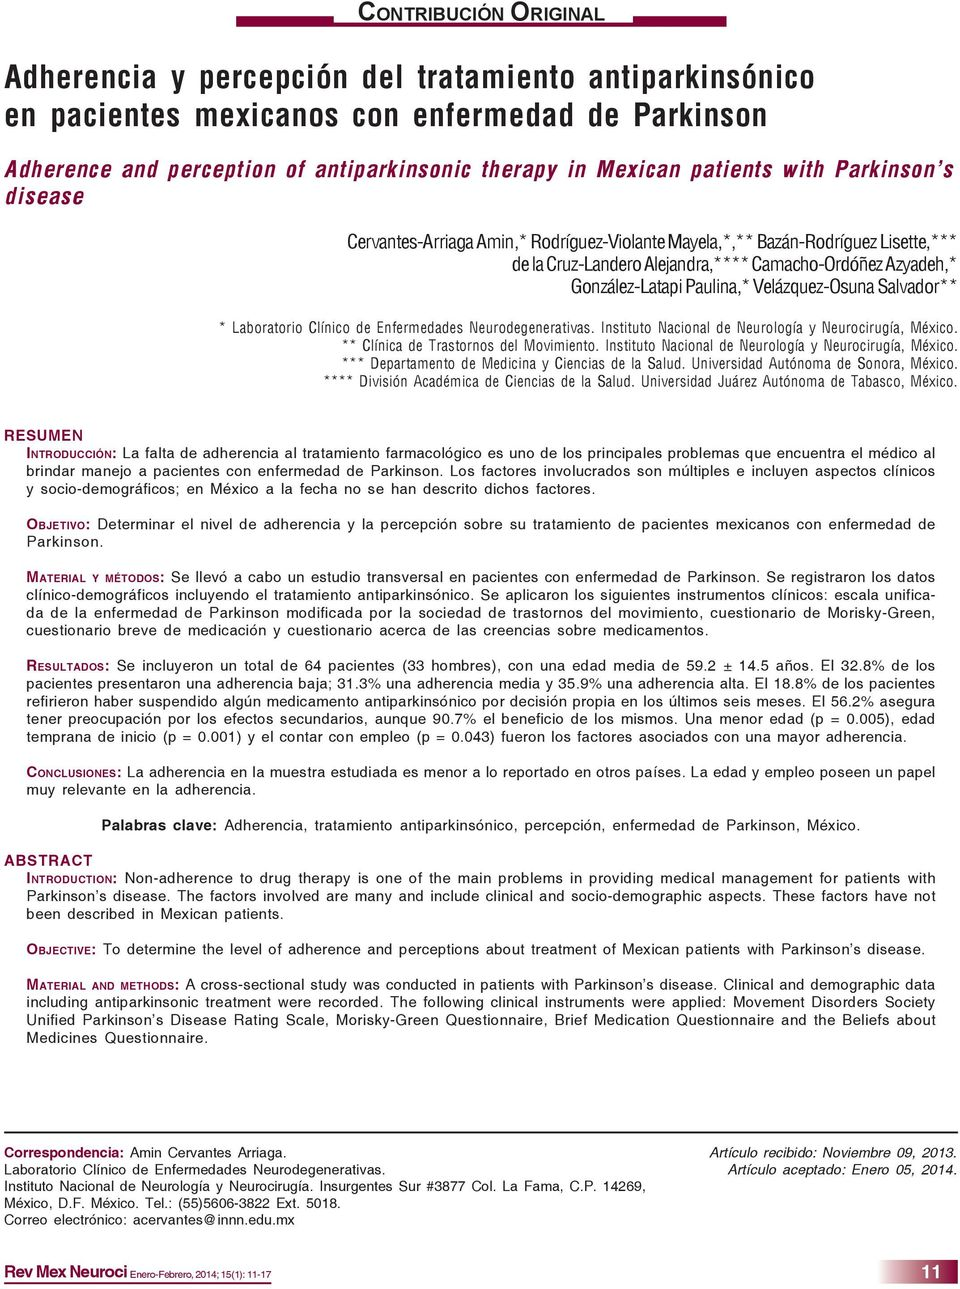 in Mexican patients with Parkinson s disease Cervantes-Arriaga Amin,* Rodríguez-Violante Mayela,*,** Bazán-Rodríguez Lisette,*** de la Cruz-Landero Alejandra,**** Camacho-Ordóñez Azyadeh,*